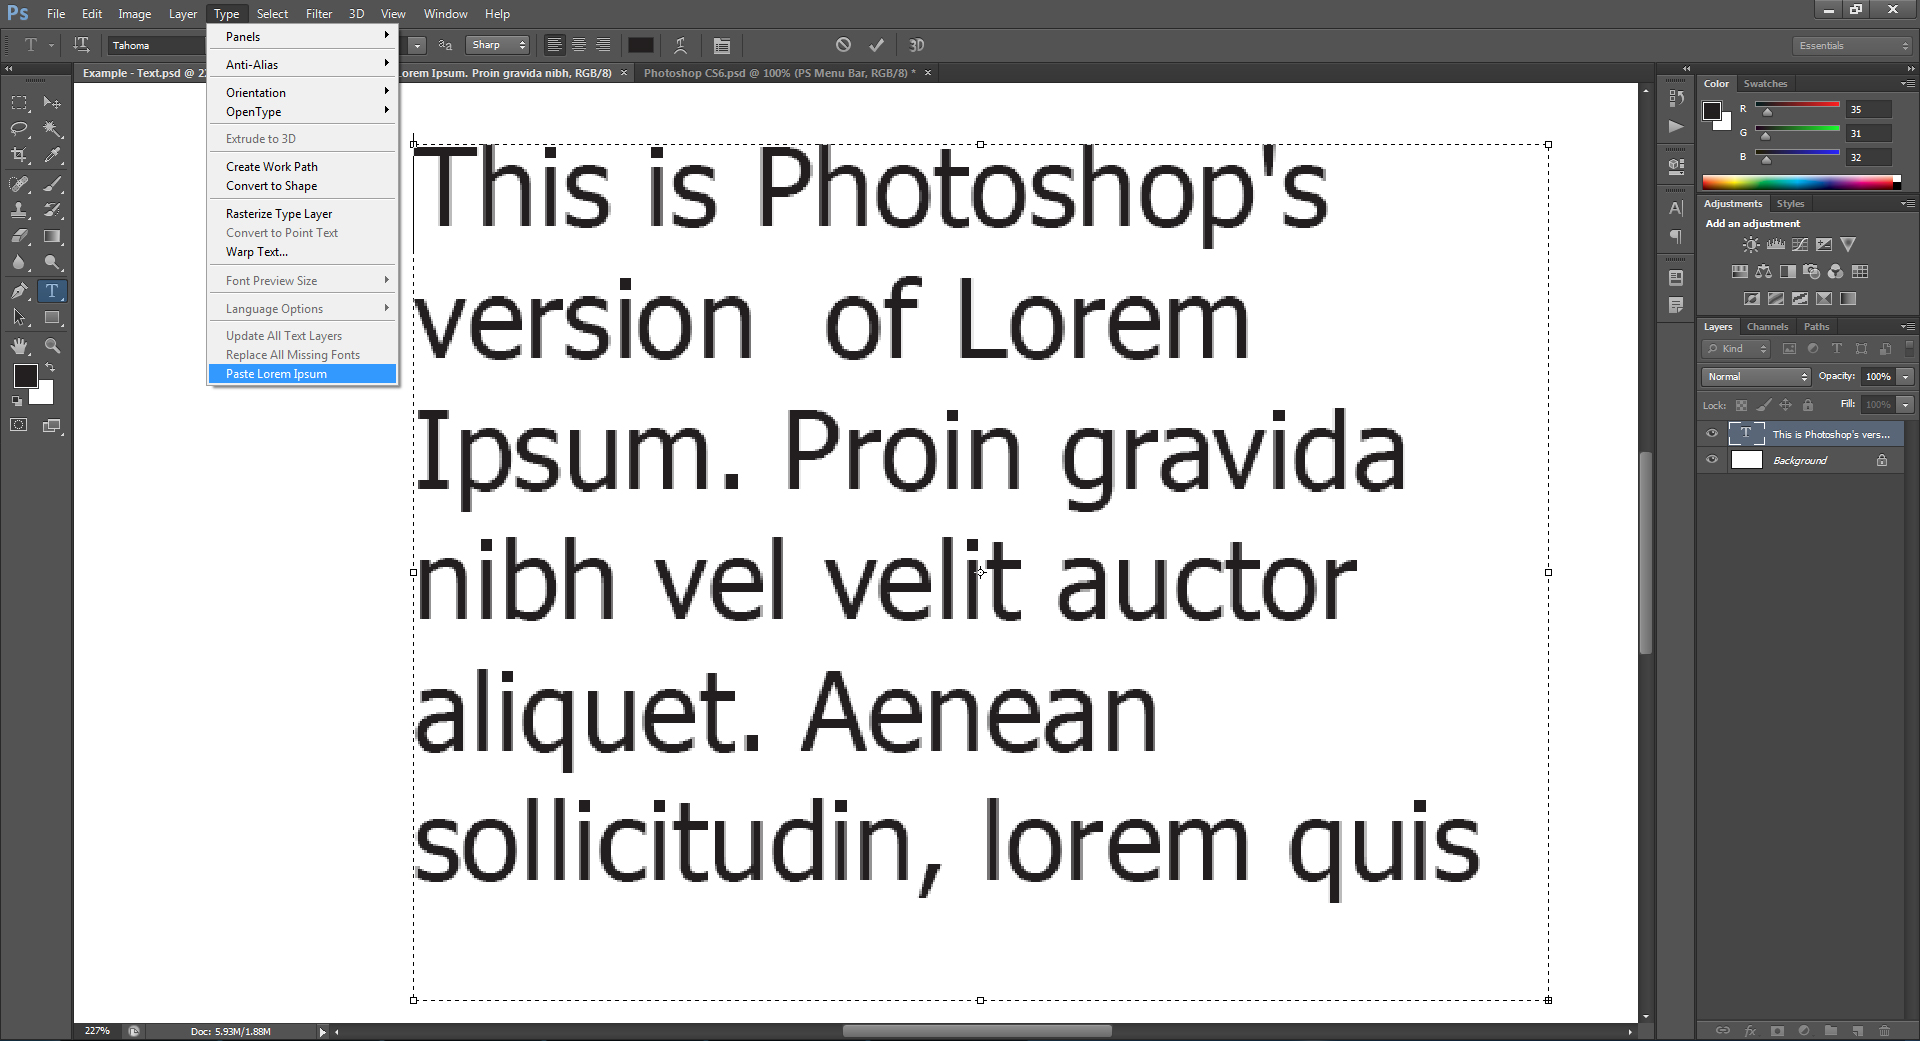 photoshop cs6 mov not the right kind of document